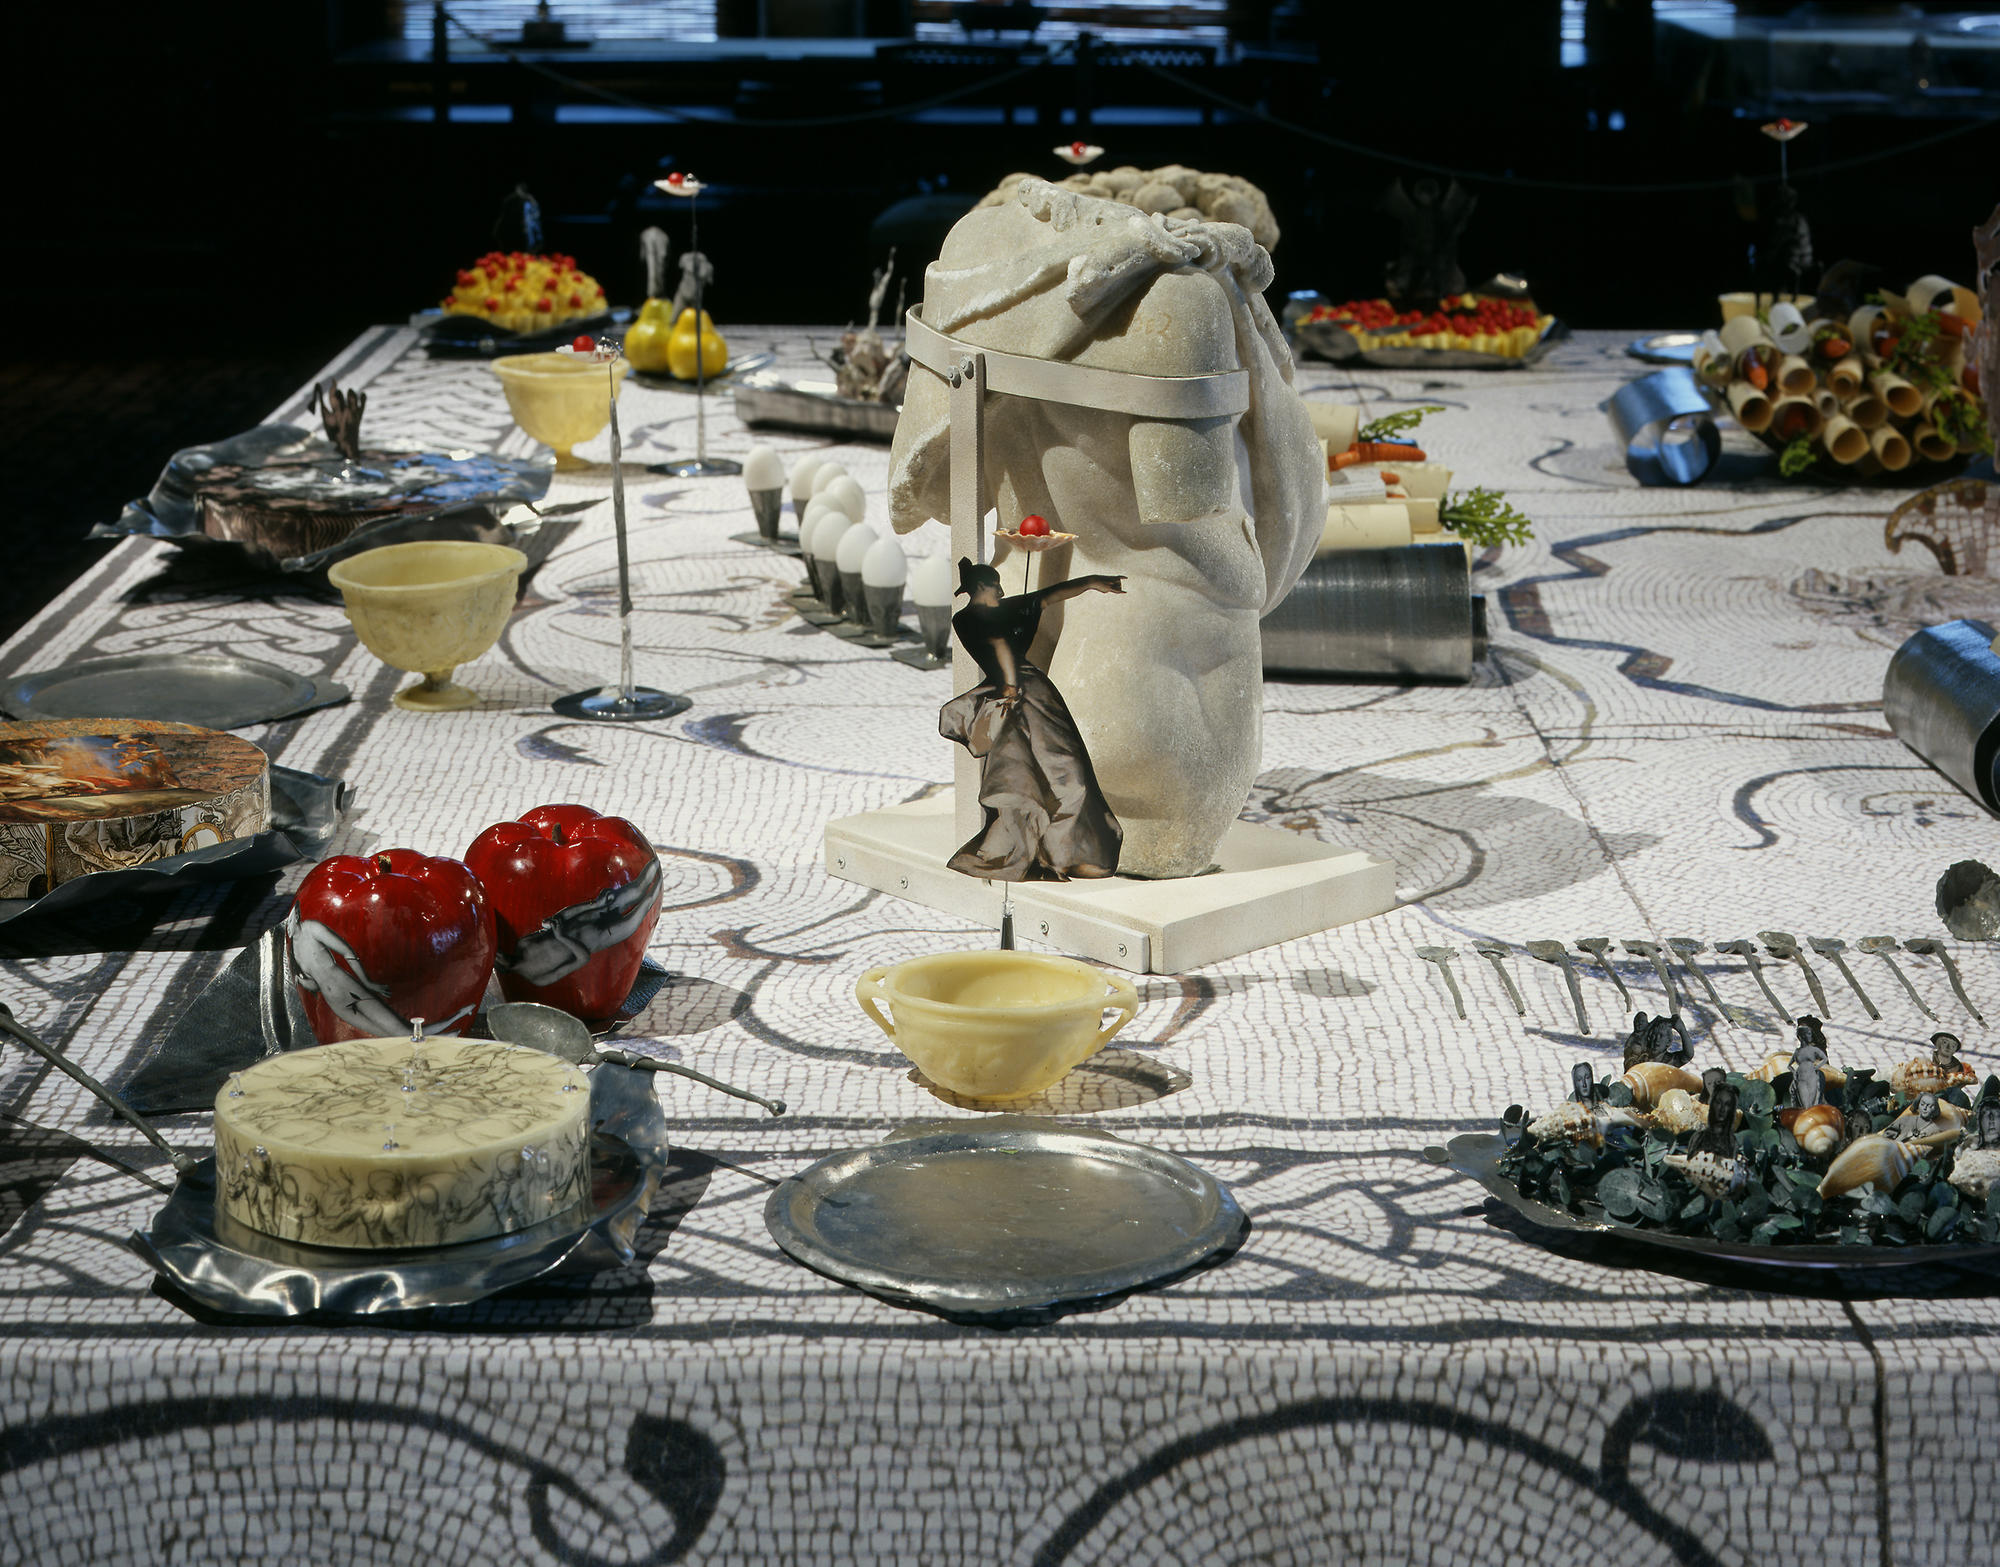 Michele Iodice, ichele Iodice, A Pagan Feast,  site-specific work for the Dutch Room, paper, lead, Roman marble, silk screen printing on fabric. 6 x 6 m.  November 22, 2005 – January 8, 2006, Isabella Stewart Gardner Museum, Boston. Image by Clements/Howcroft Photography.